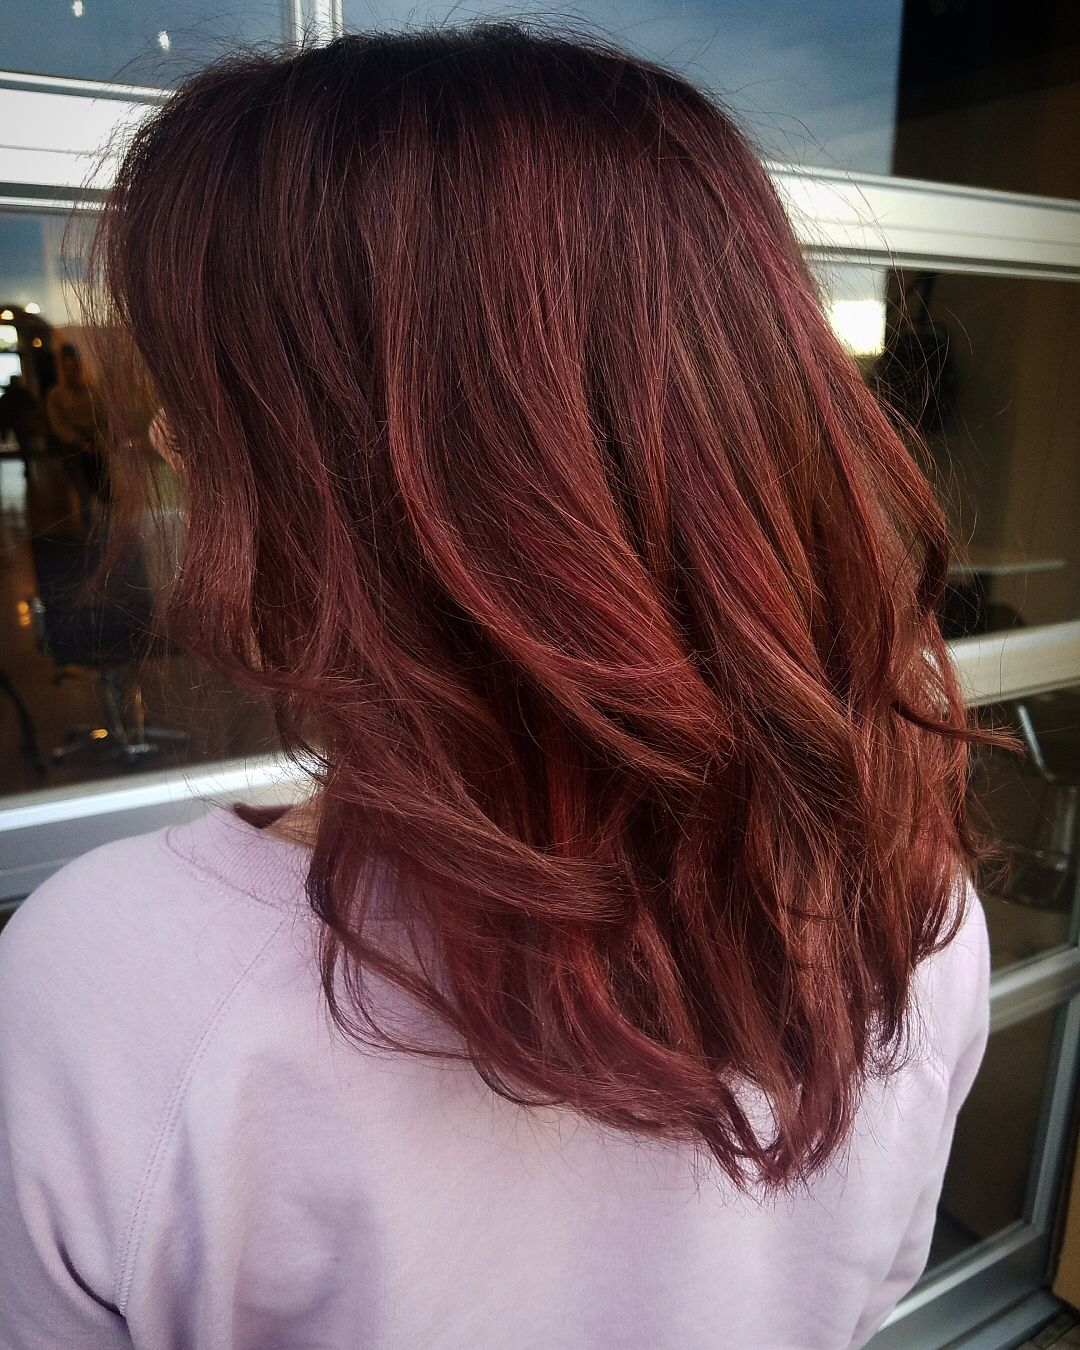 40 Stunning Red Hairstyles For Women Hairstyles Hairstyles For Medium Length Hair Hairstyles For Short Ha Medium Length Hair Styles Hair Styles Hair Lengths